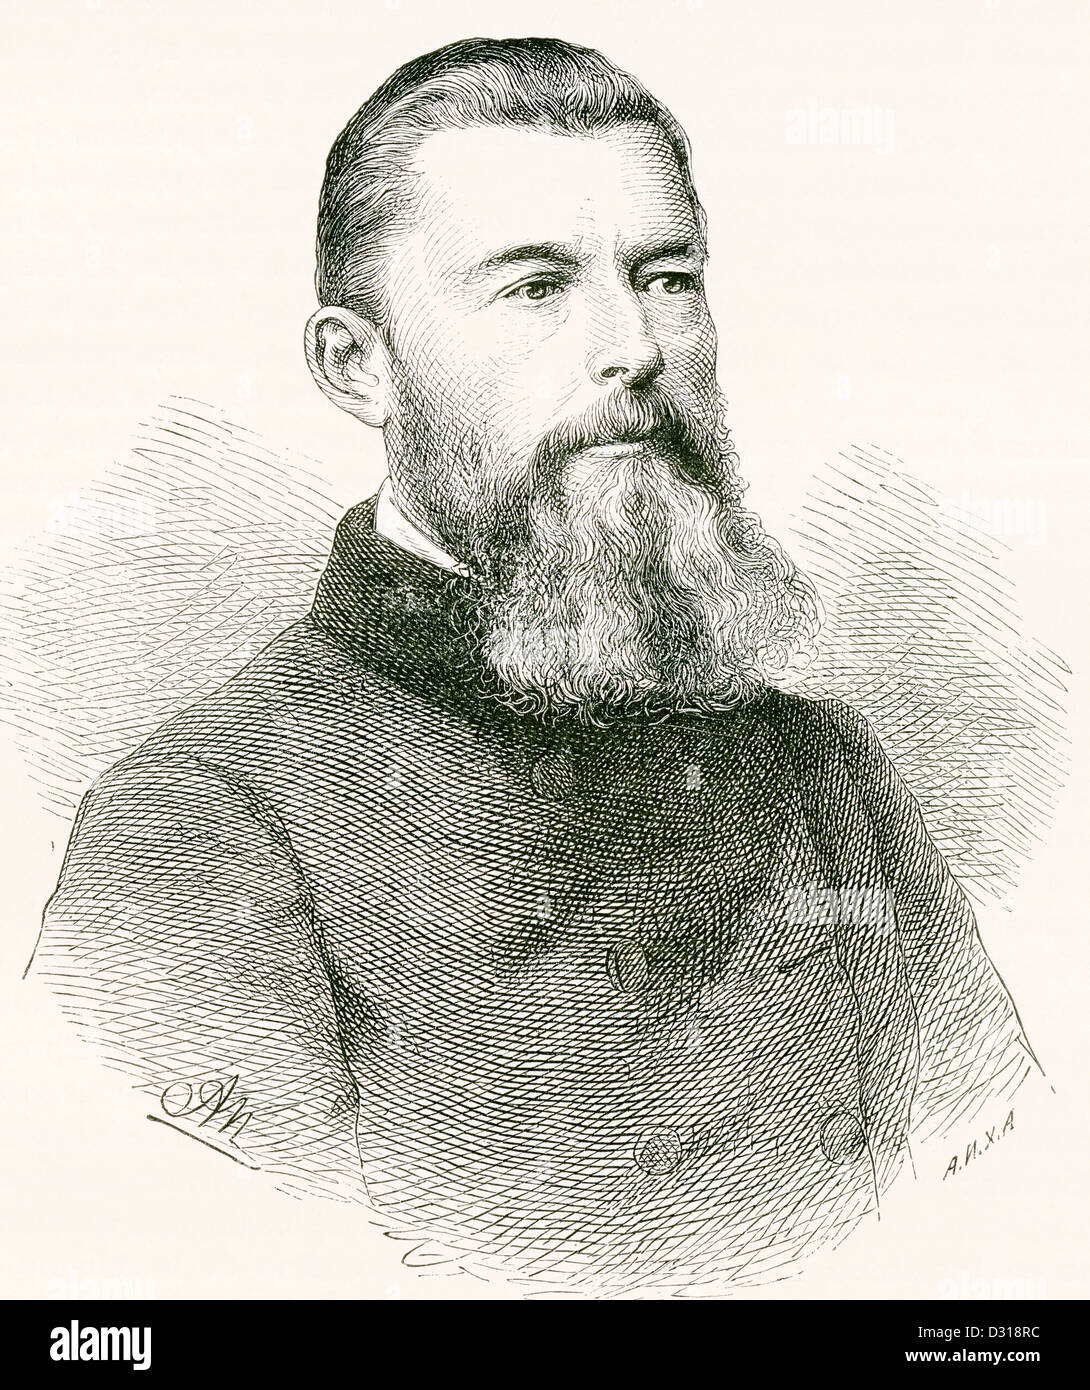 Ludwig Andreas von Feuerbach, 1804 – 1872. German philosopher and anthropologist. - Stock Image